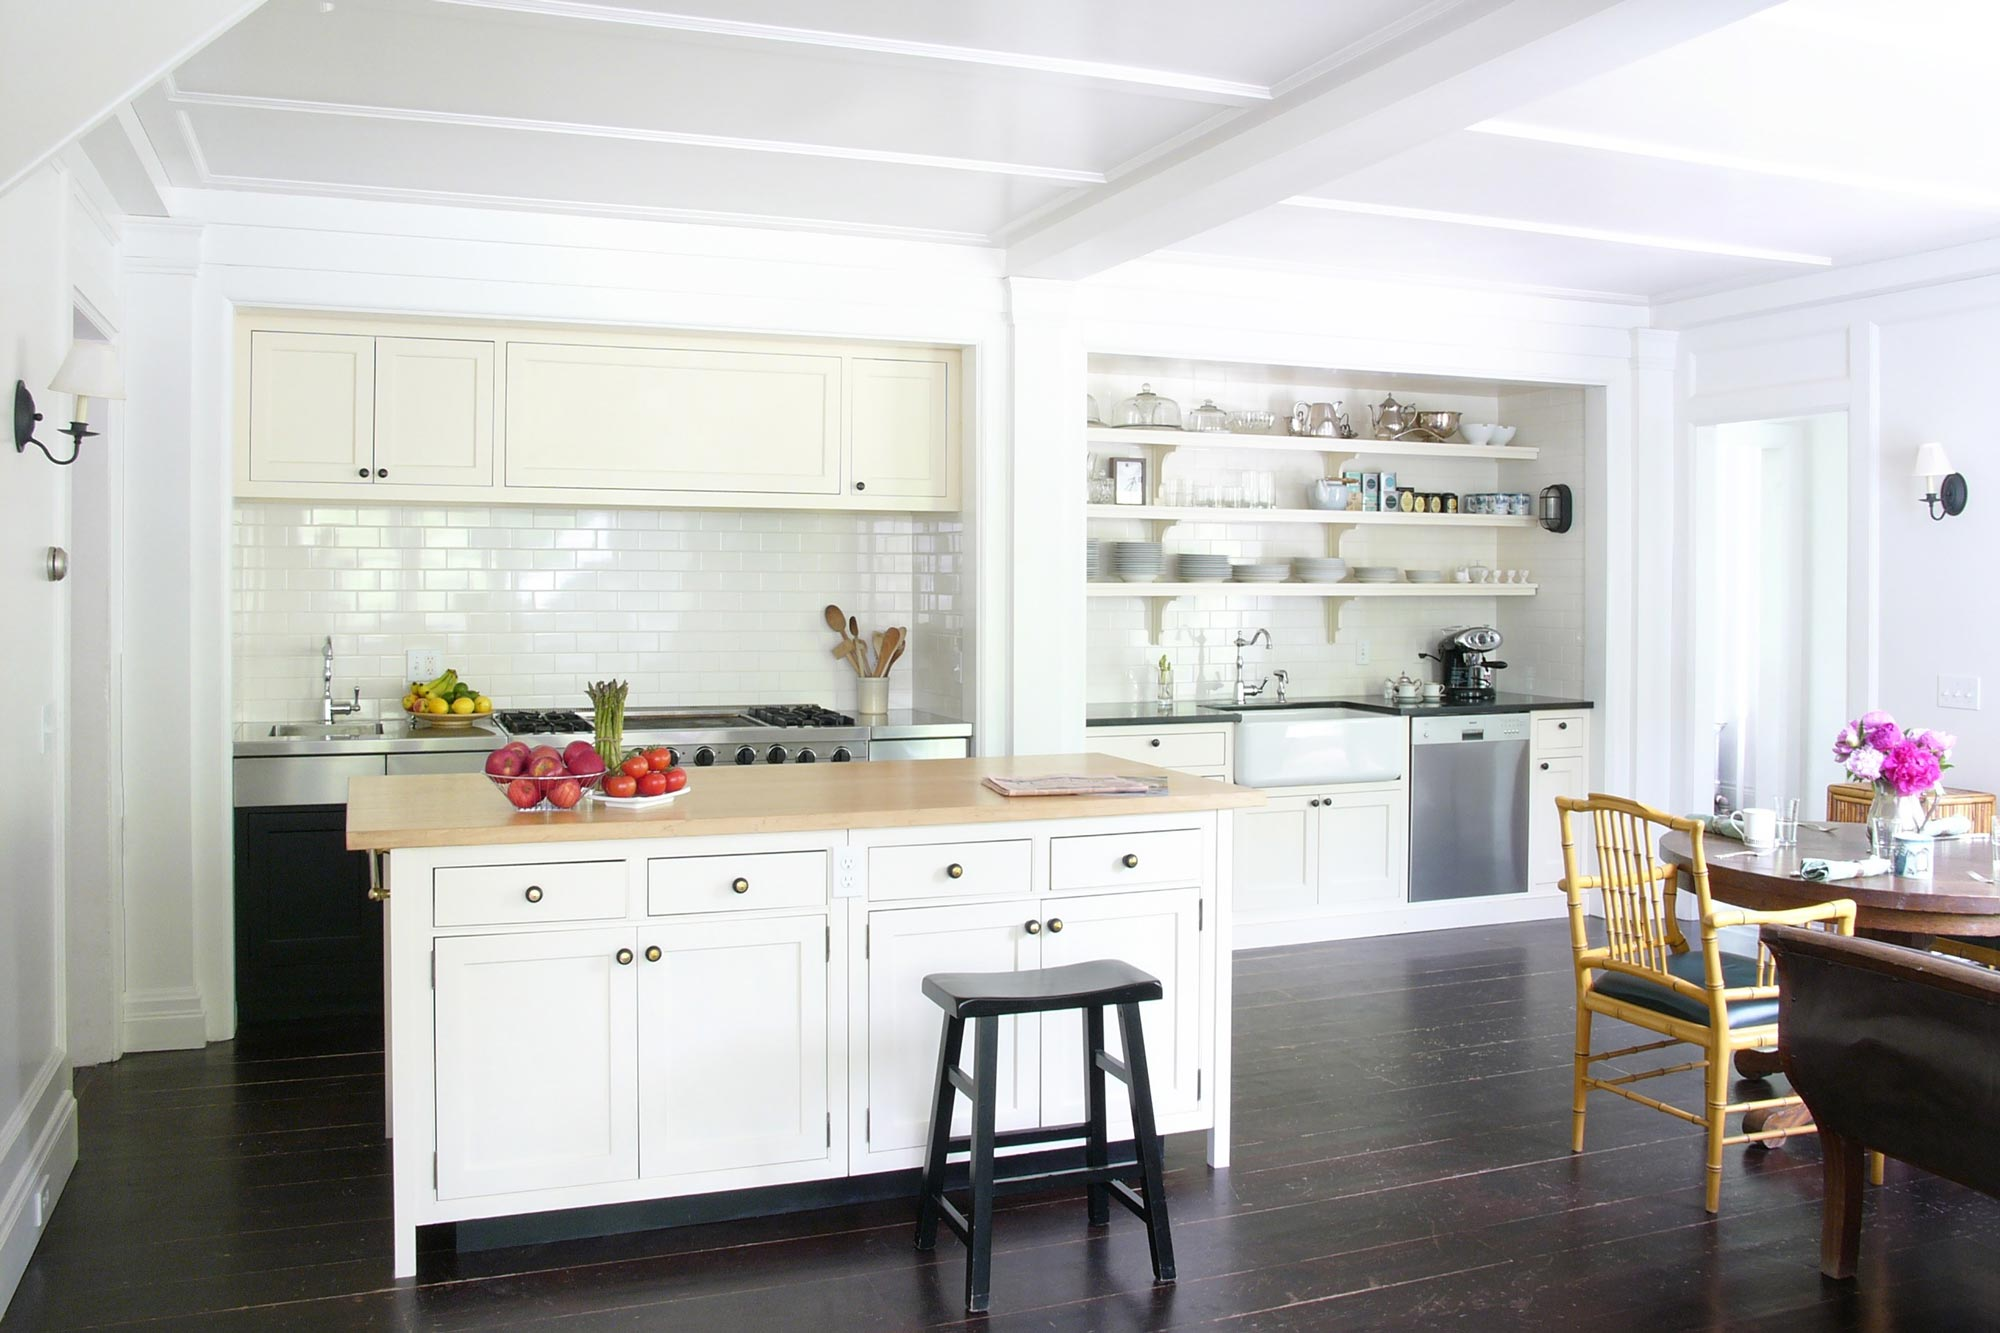 T-kitchen-from-family.jpg